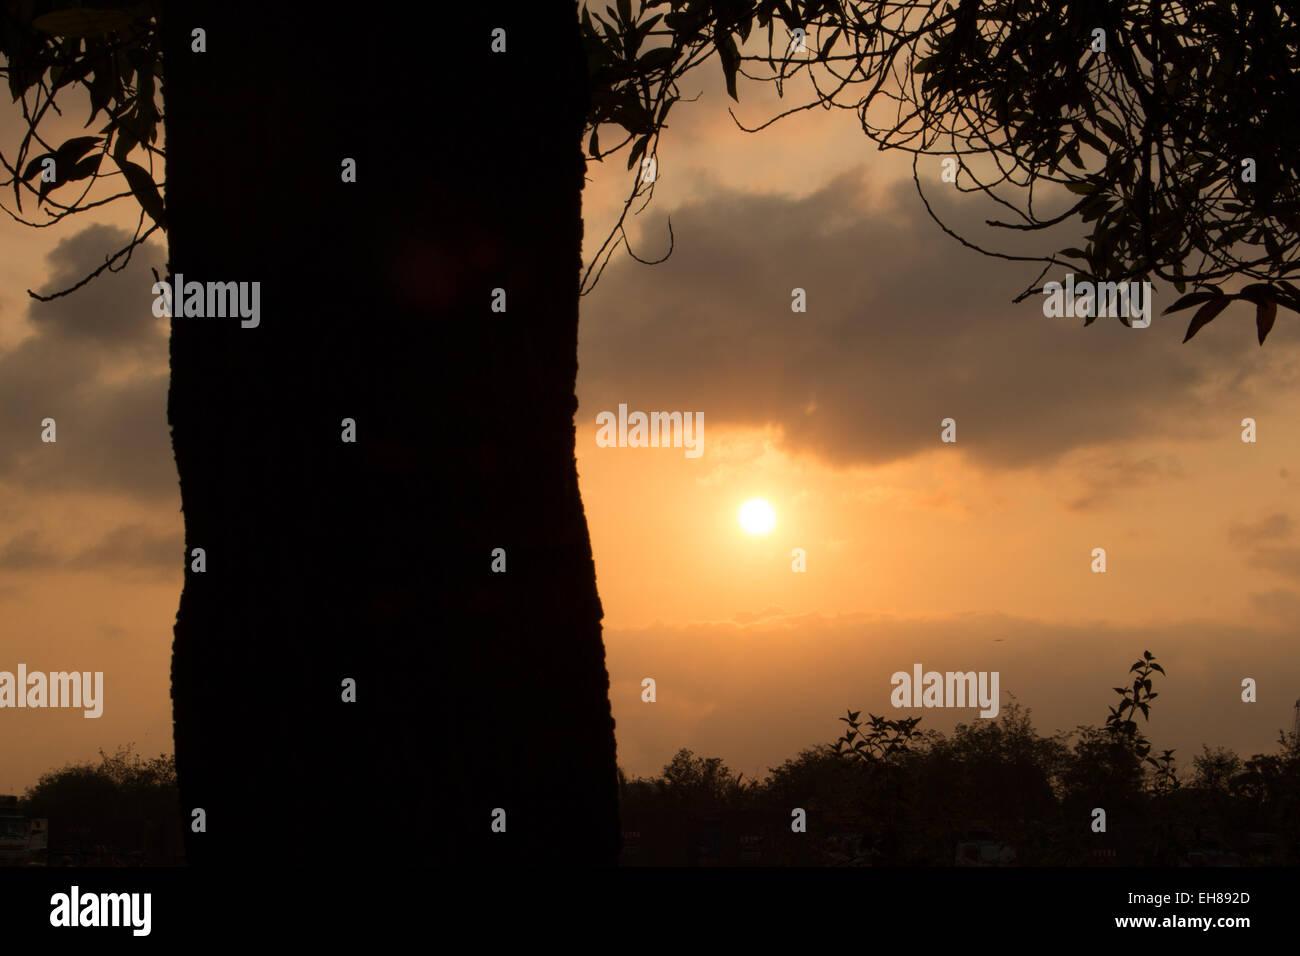 sun rises over a silhouette of trees. - Stock Image